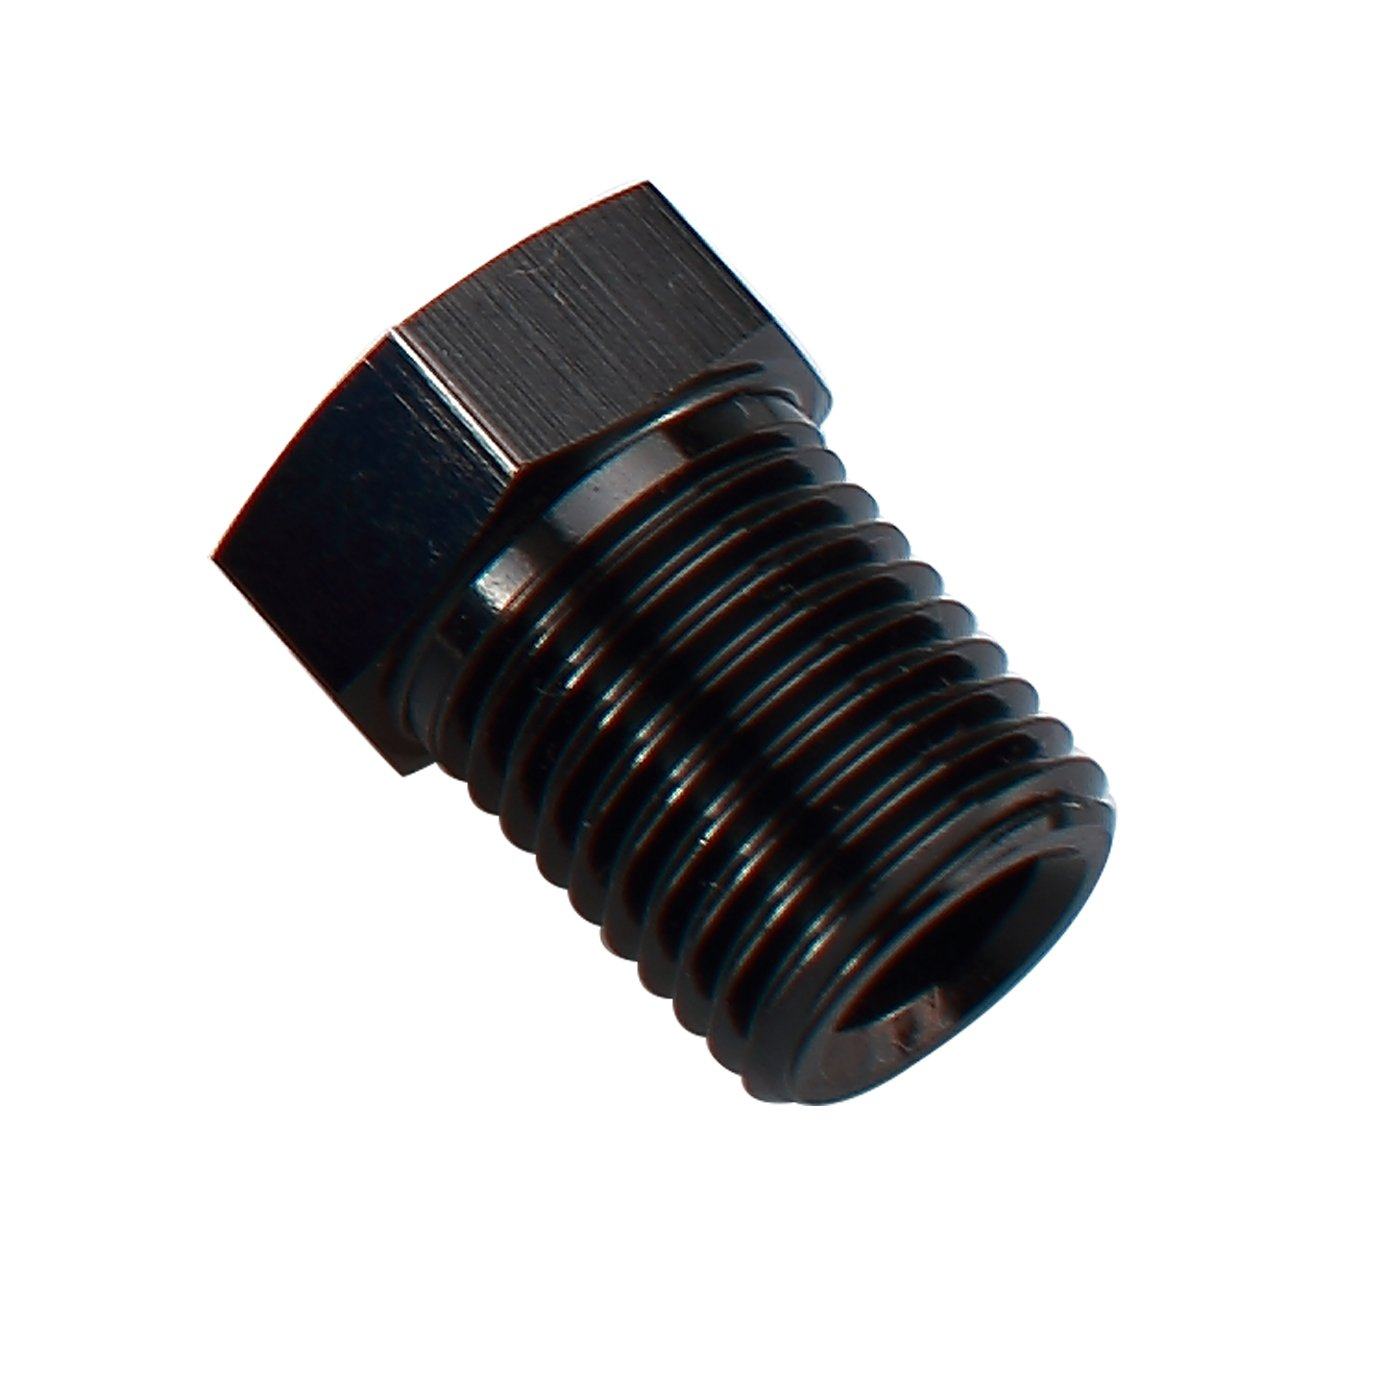 8 AN 3//4-16 to 1//2 NPT Aluminum Female 8AN Swivel to Male 1//2 NPT Thread Fuel Pipe Hose Fitting Straight Blue